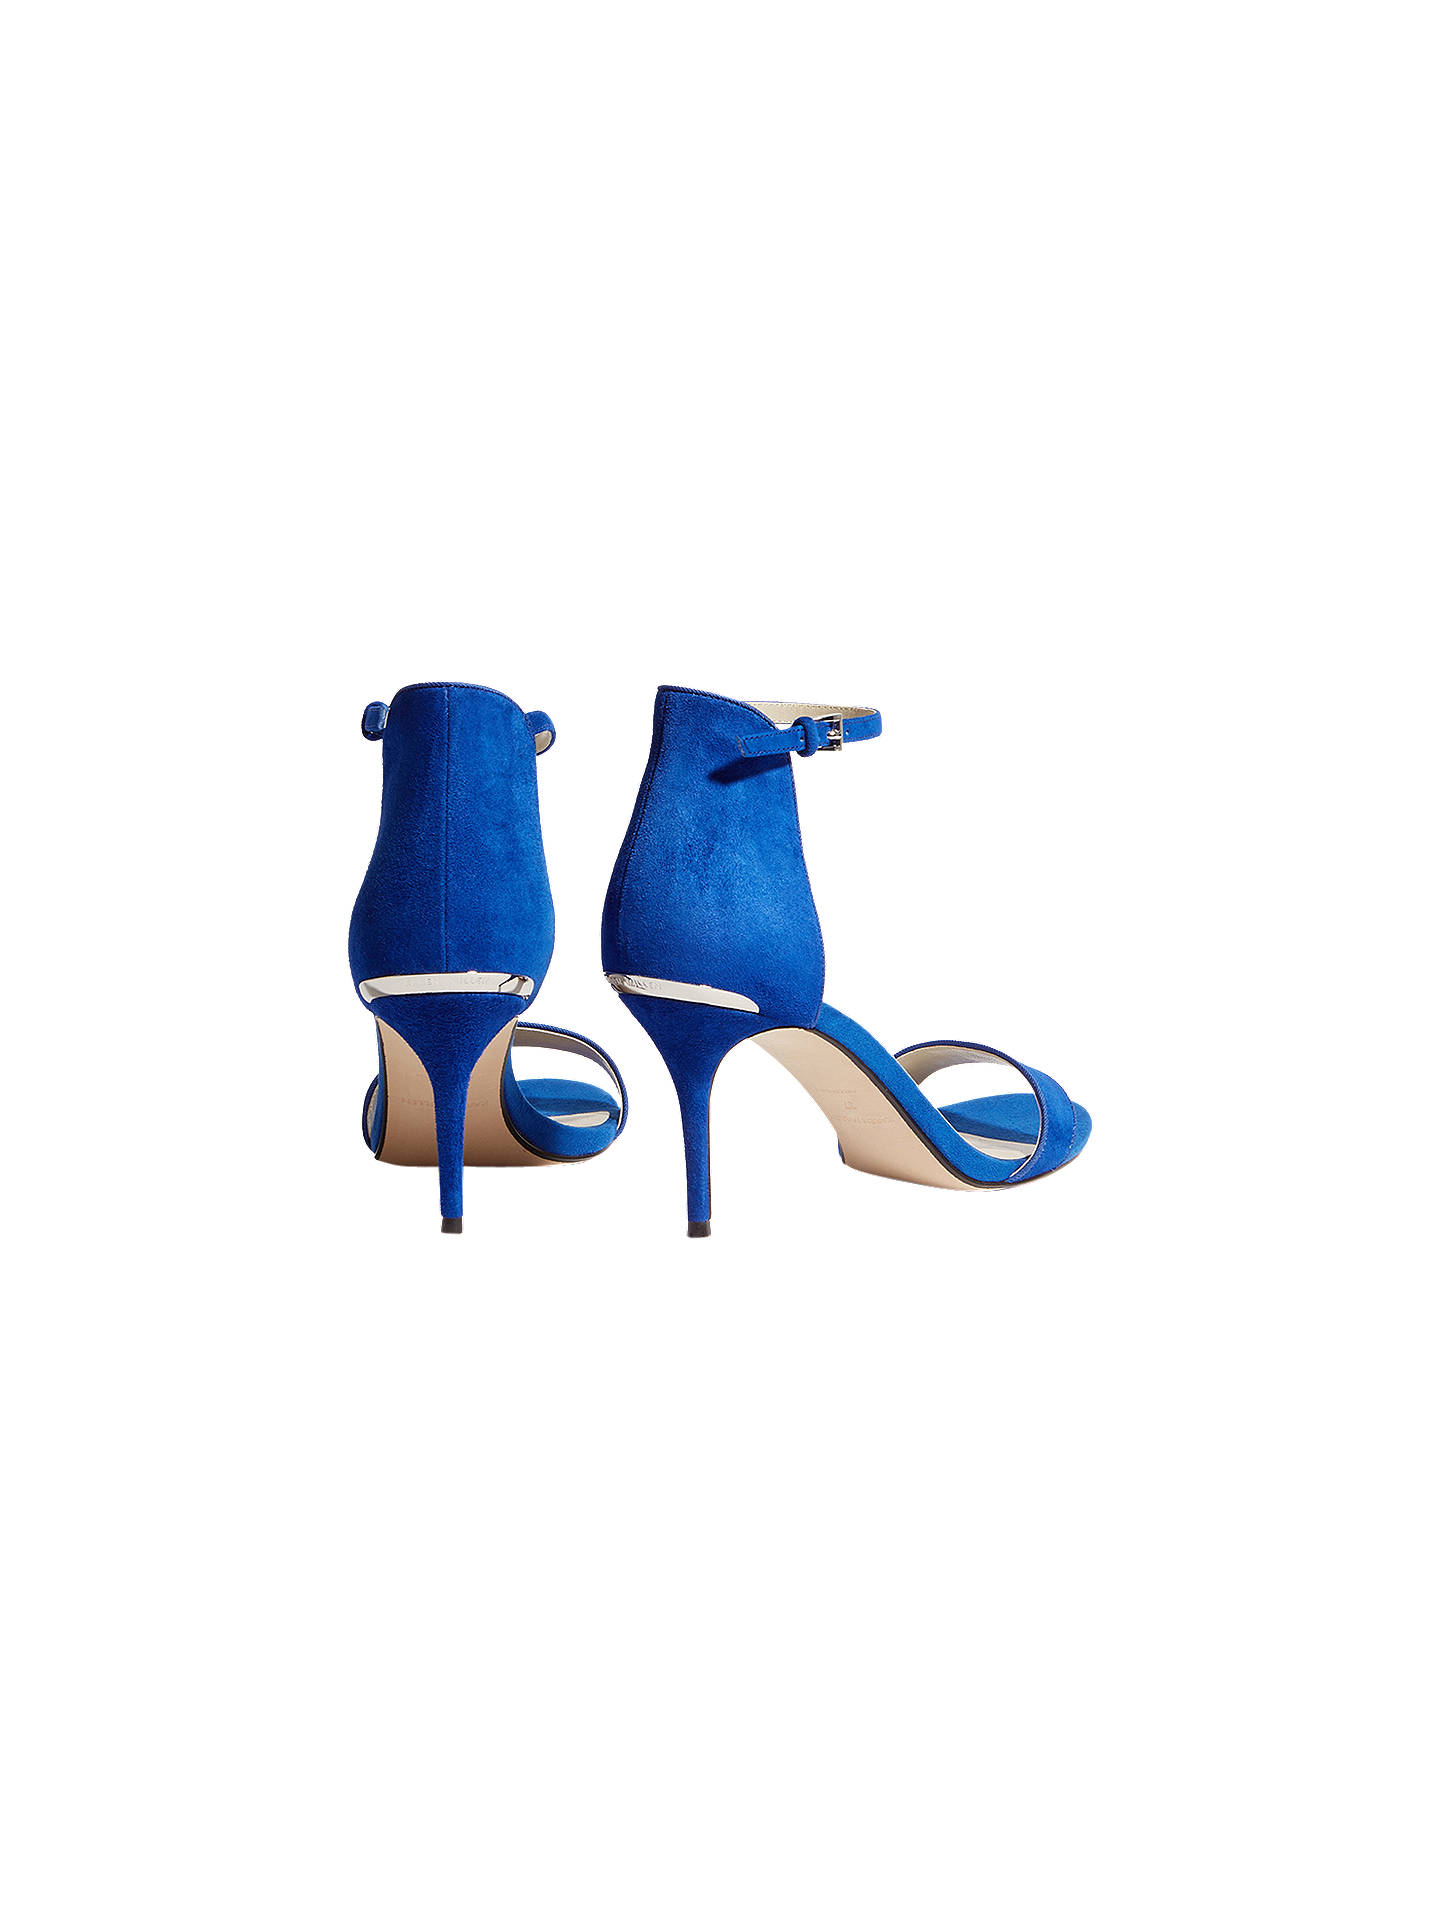 BuyKaren Millen Strappy Stiletto Sandals, Blue, 3 Online at johnlewis.com